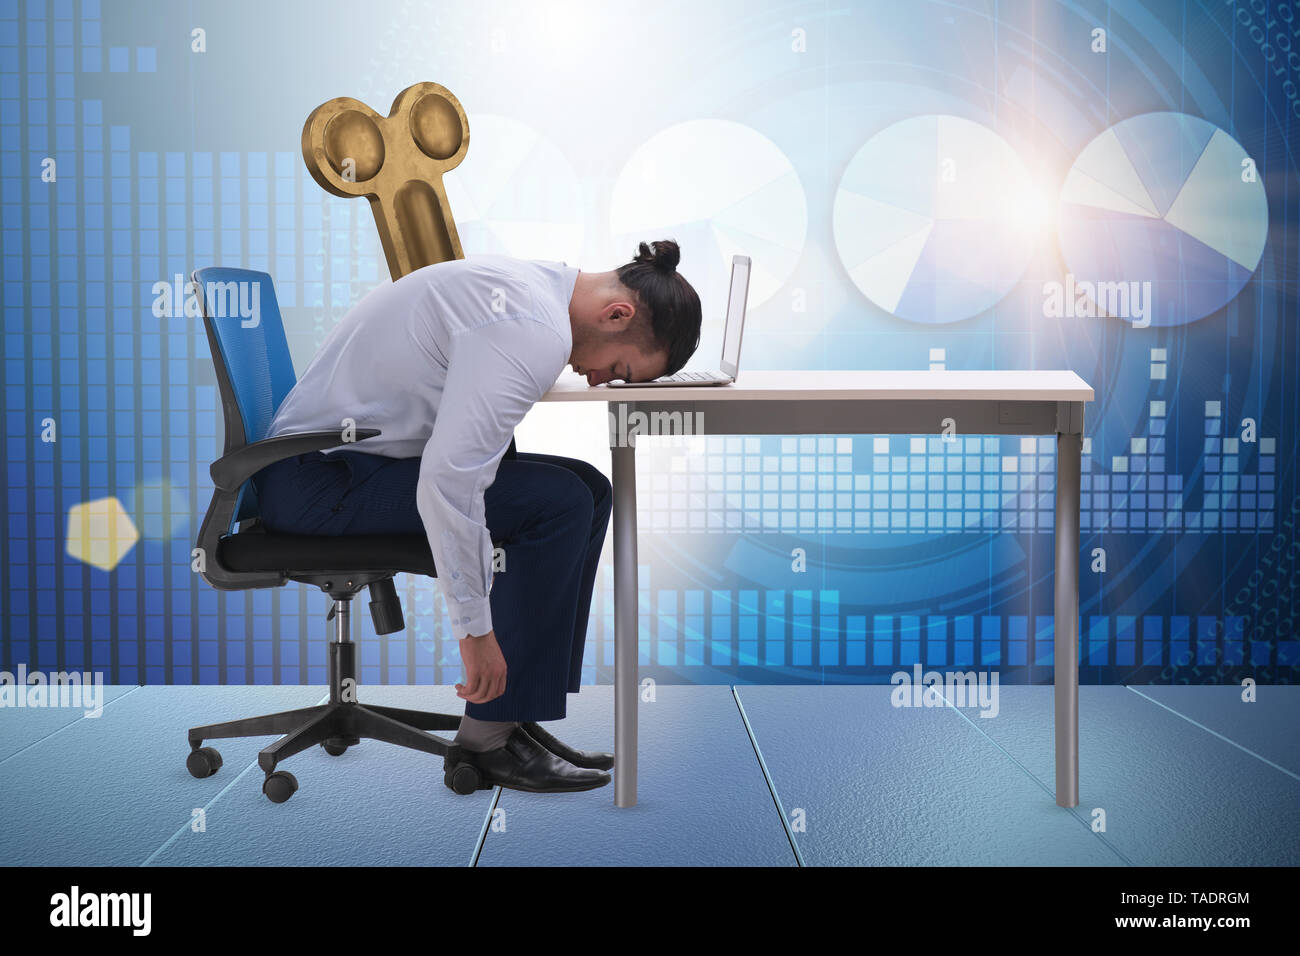 Employee losing energy from too much work - Stock Image